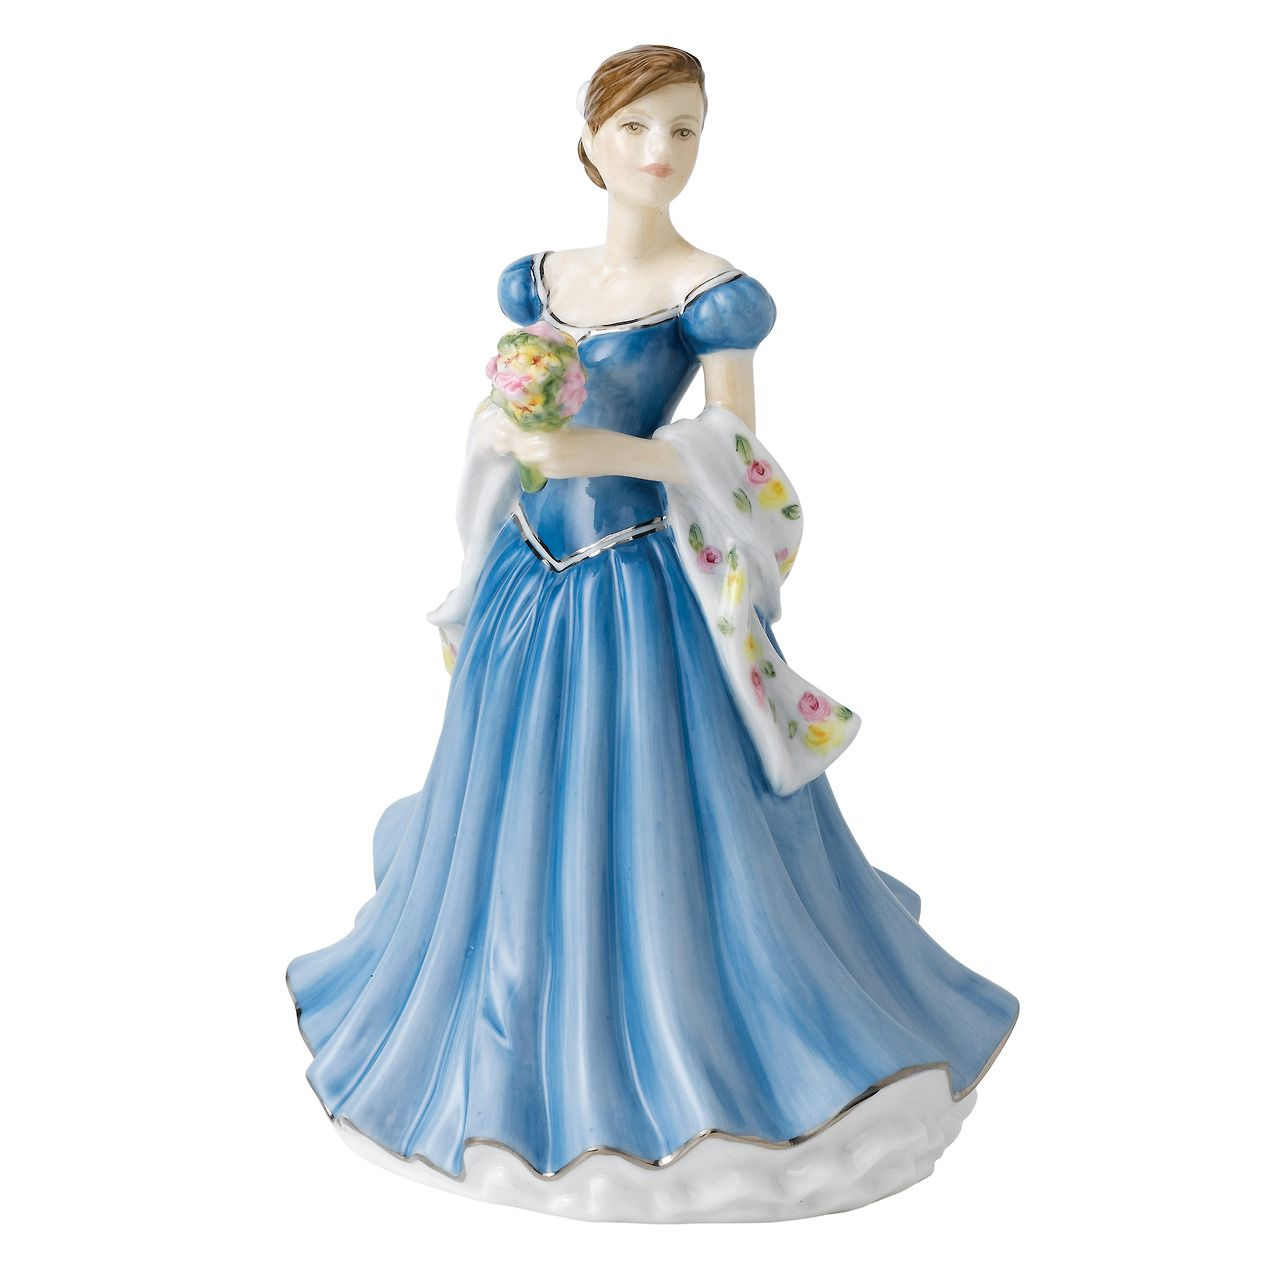 Occasions Royal Doulton Figurines. Hurry in and find the perfect one for you or a gift! At your nearest Waterford Outlet.    #royaldoultonfigurines